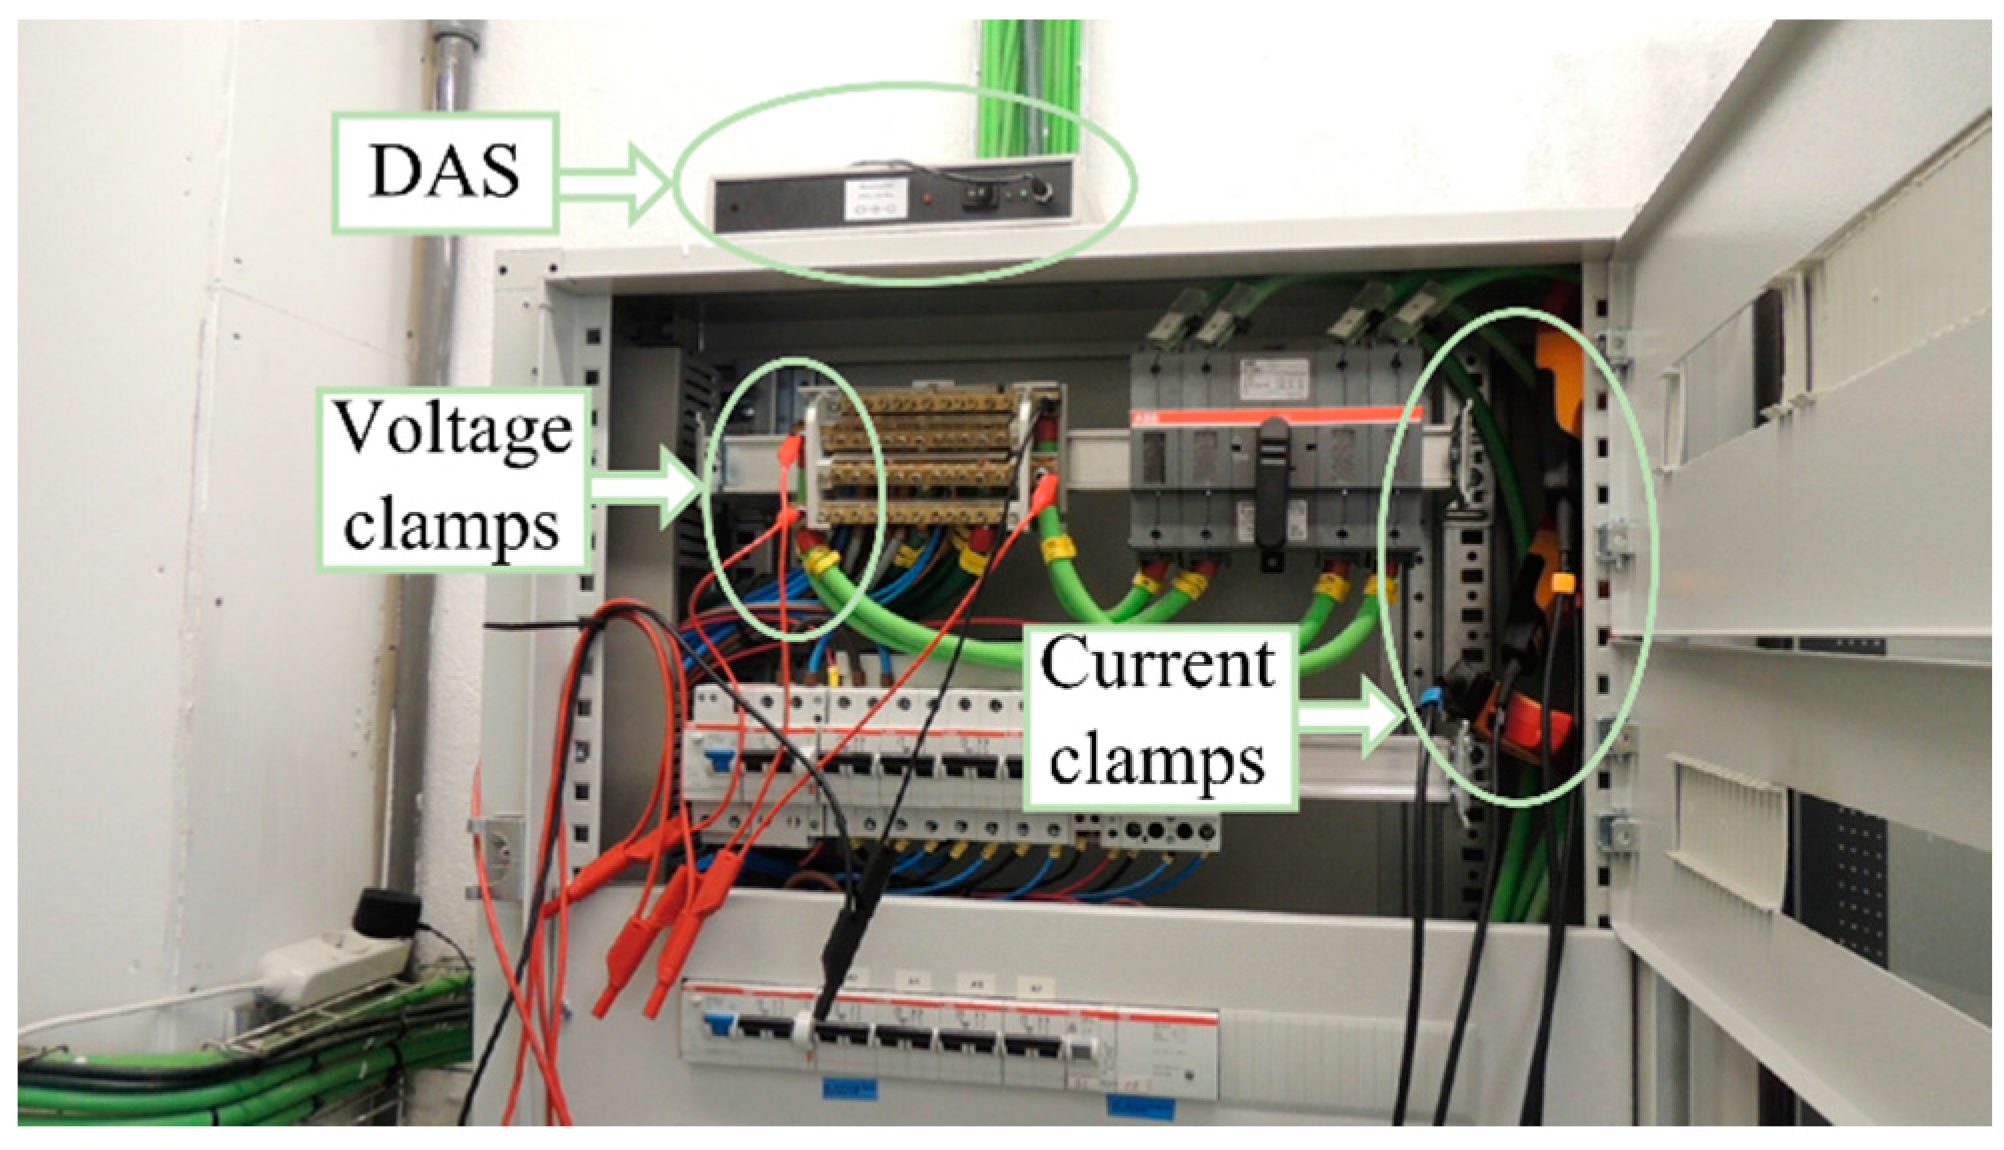 harmonics in domestic power consumption engineering essay International journal of scientific and research publications, volume 4, issue 7, july 2014 1 issn 2250-3153 wwwijsrporg improvement of power quality using pwm rectifiers.